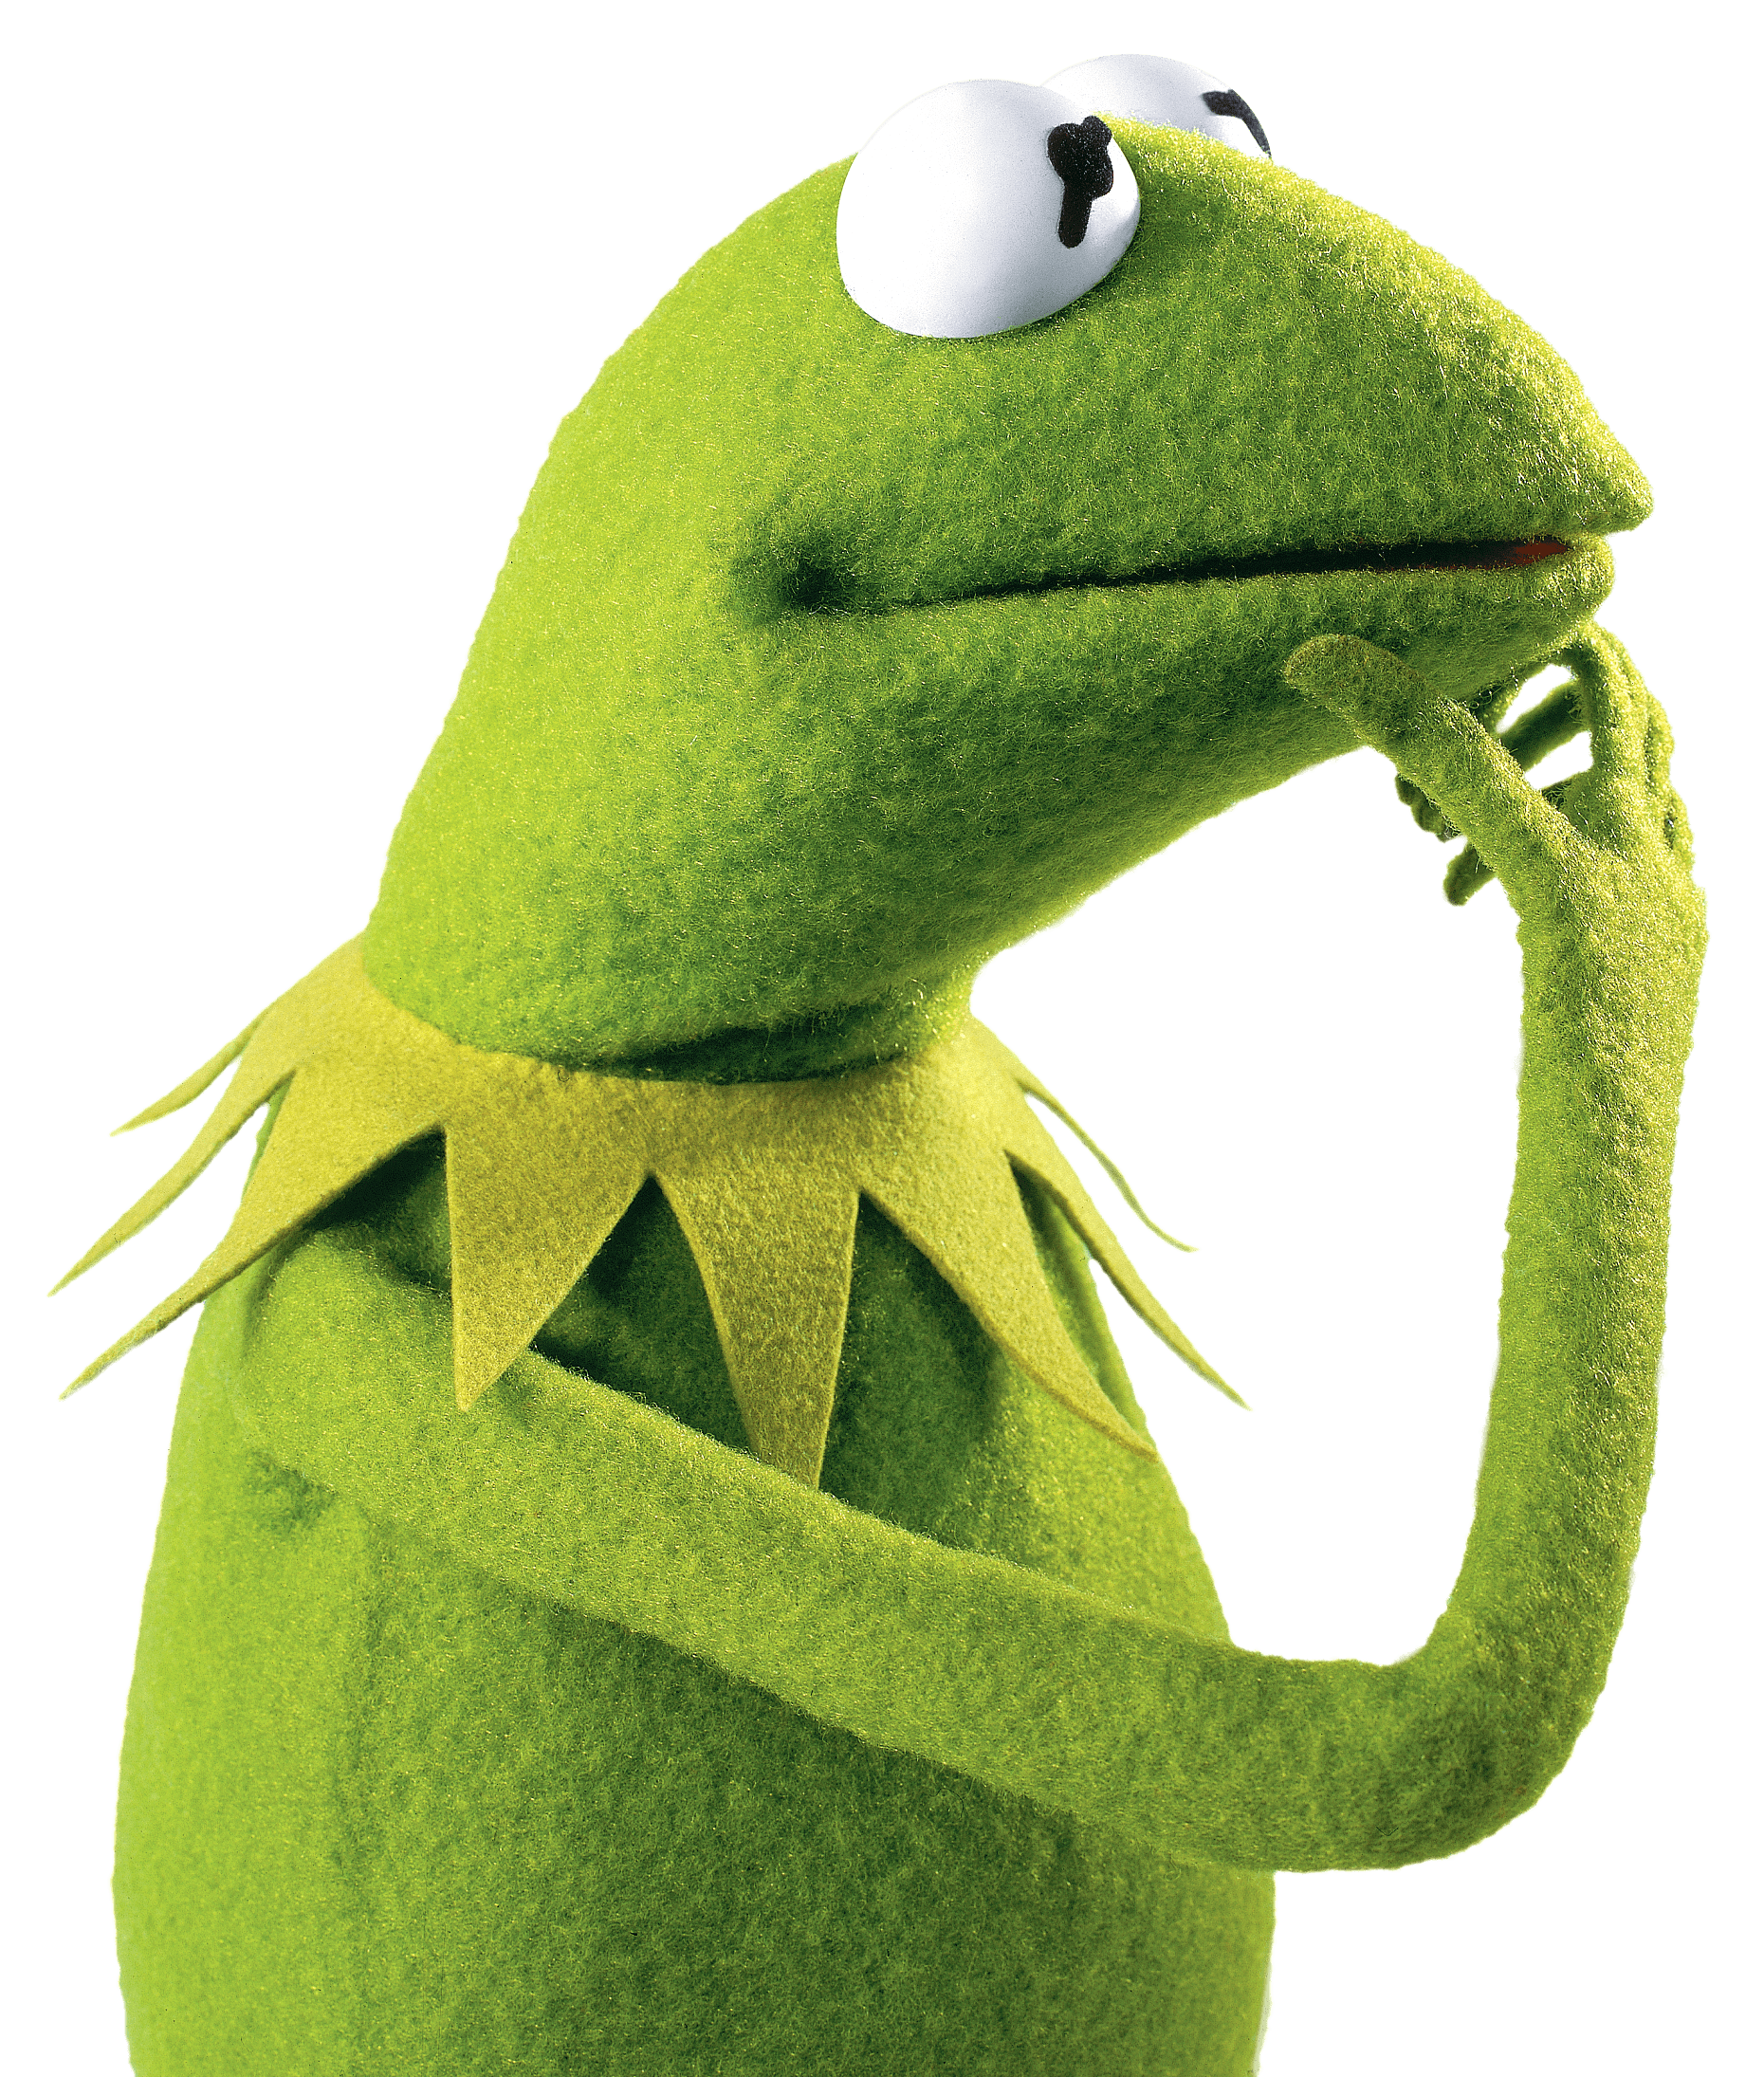 1860x2190 Kermit The Frog Png - Kermit The Frog Profile Free Wallpaper ...